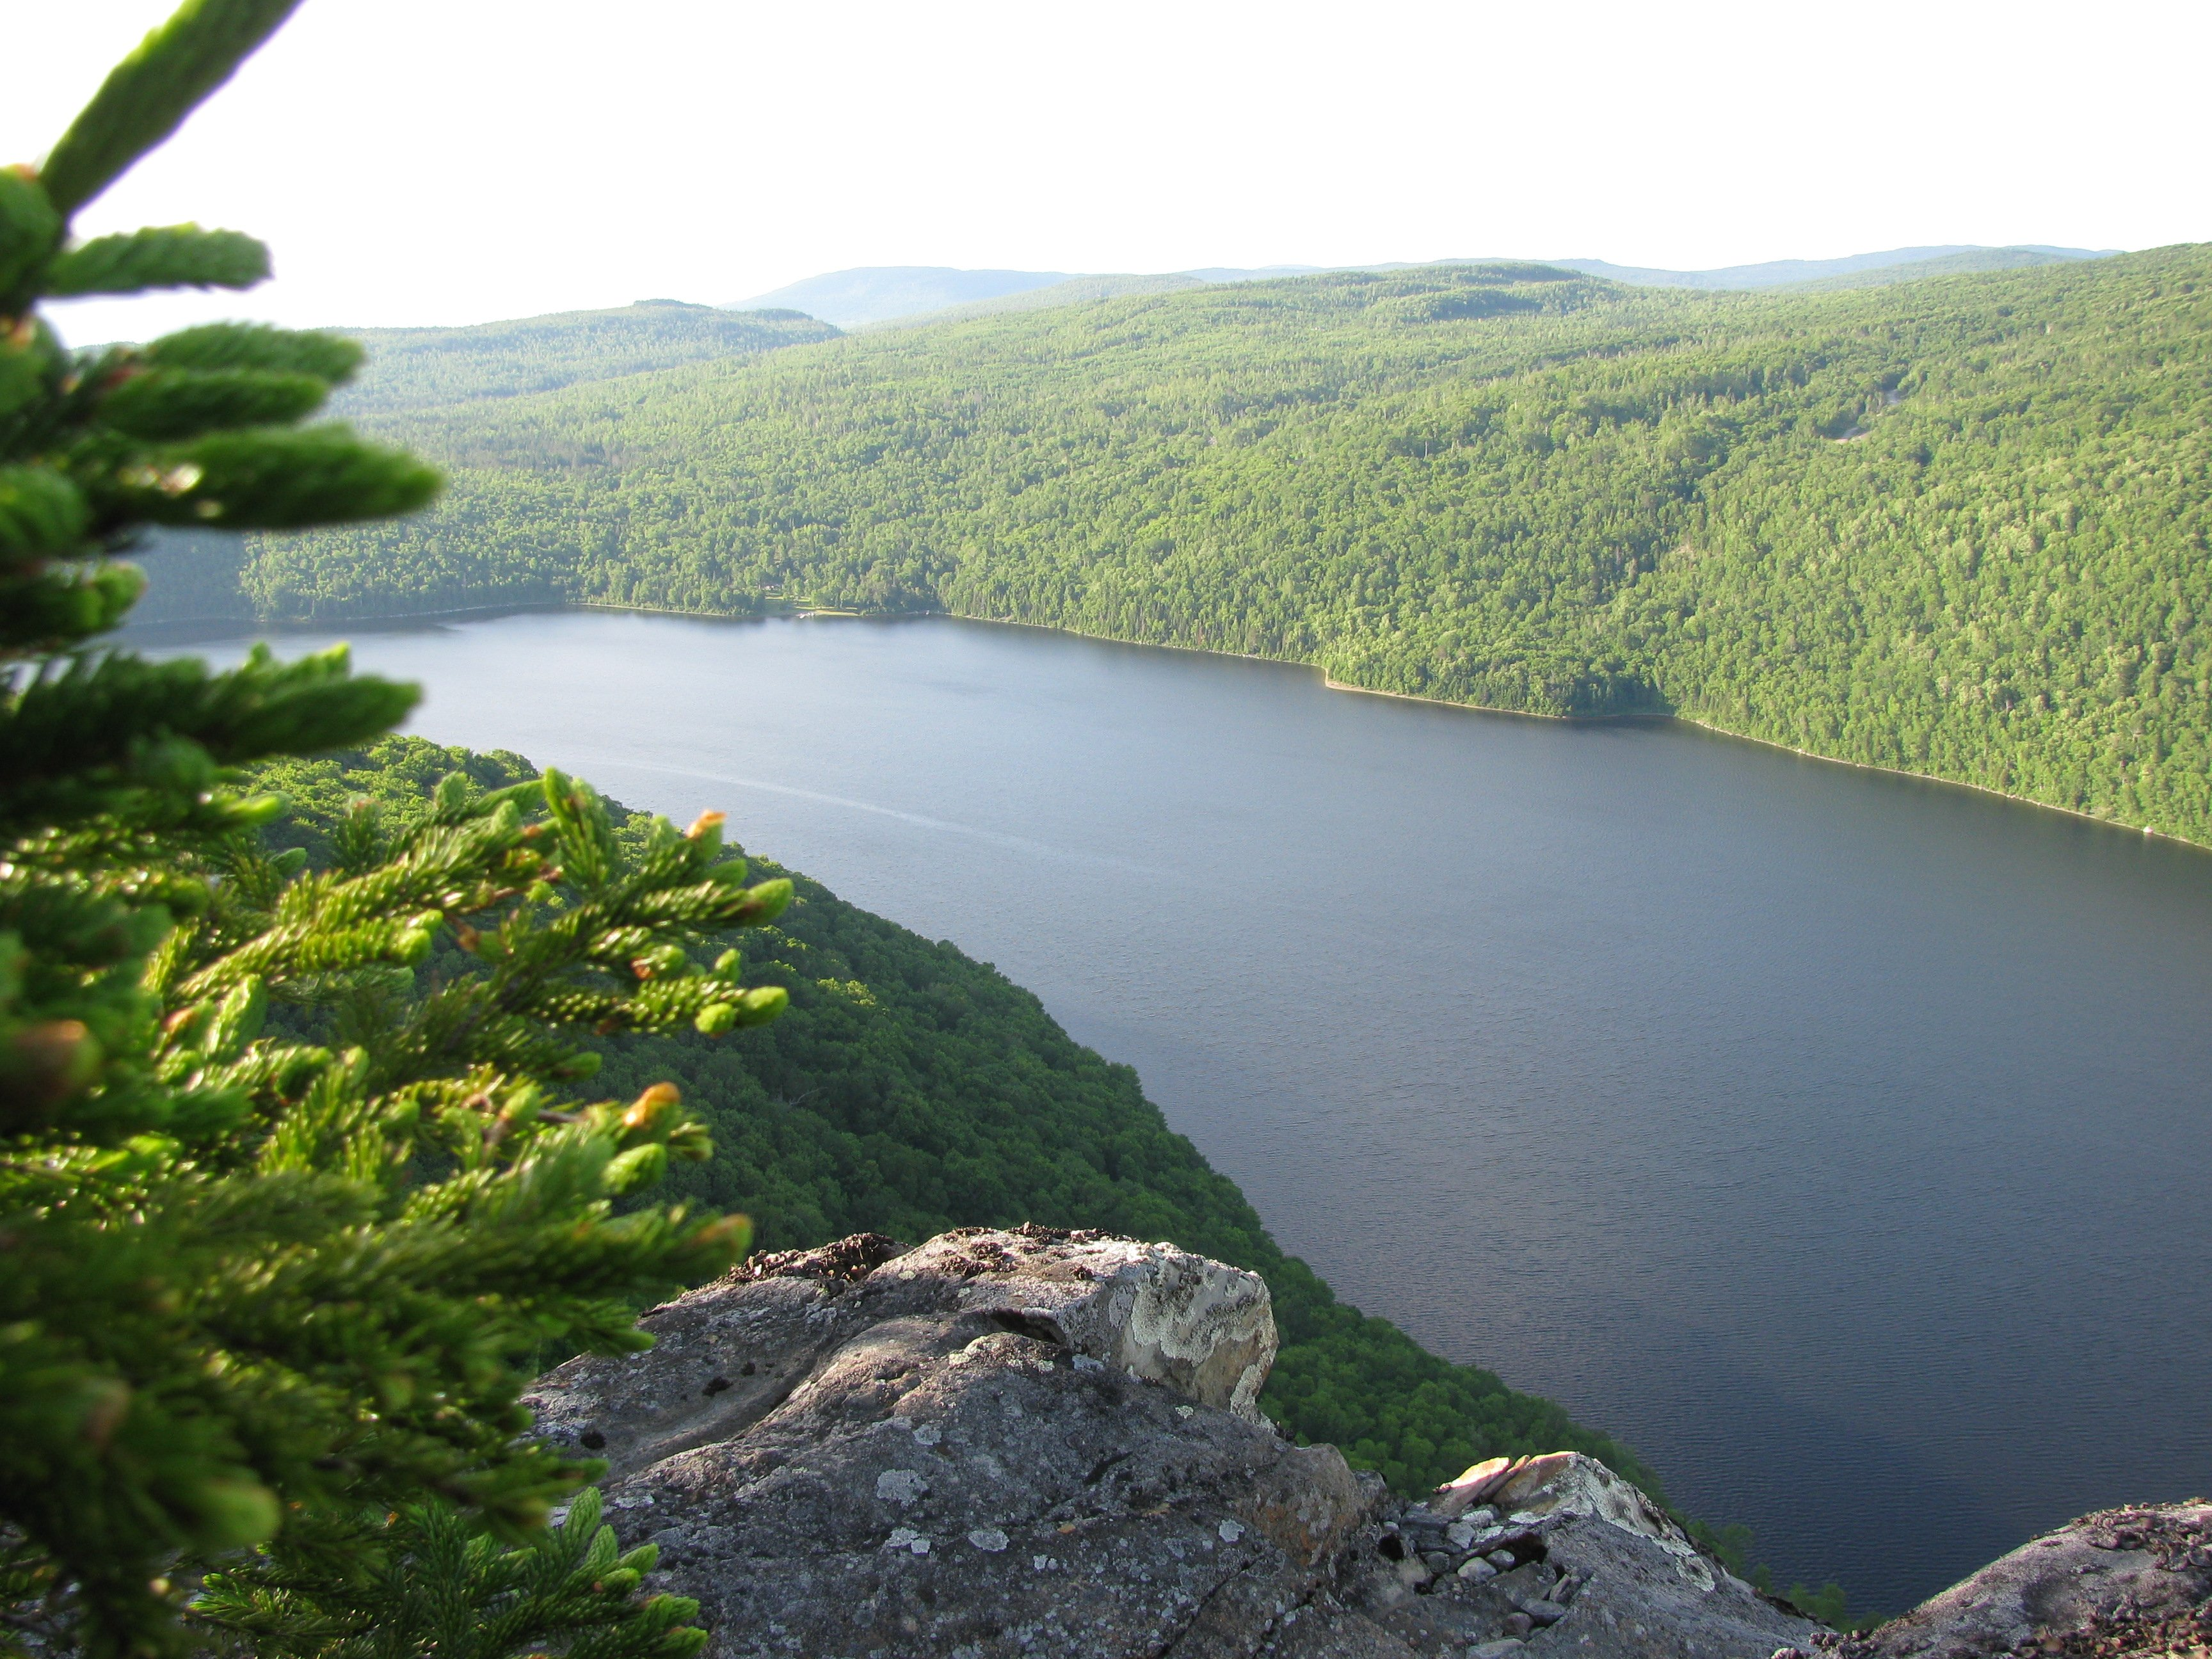 The view of the pond from Enchanted Lookout on the summit of Bulldog Mountain